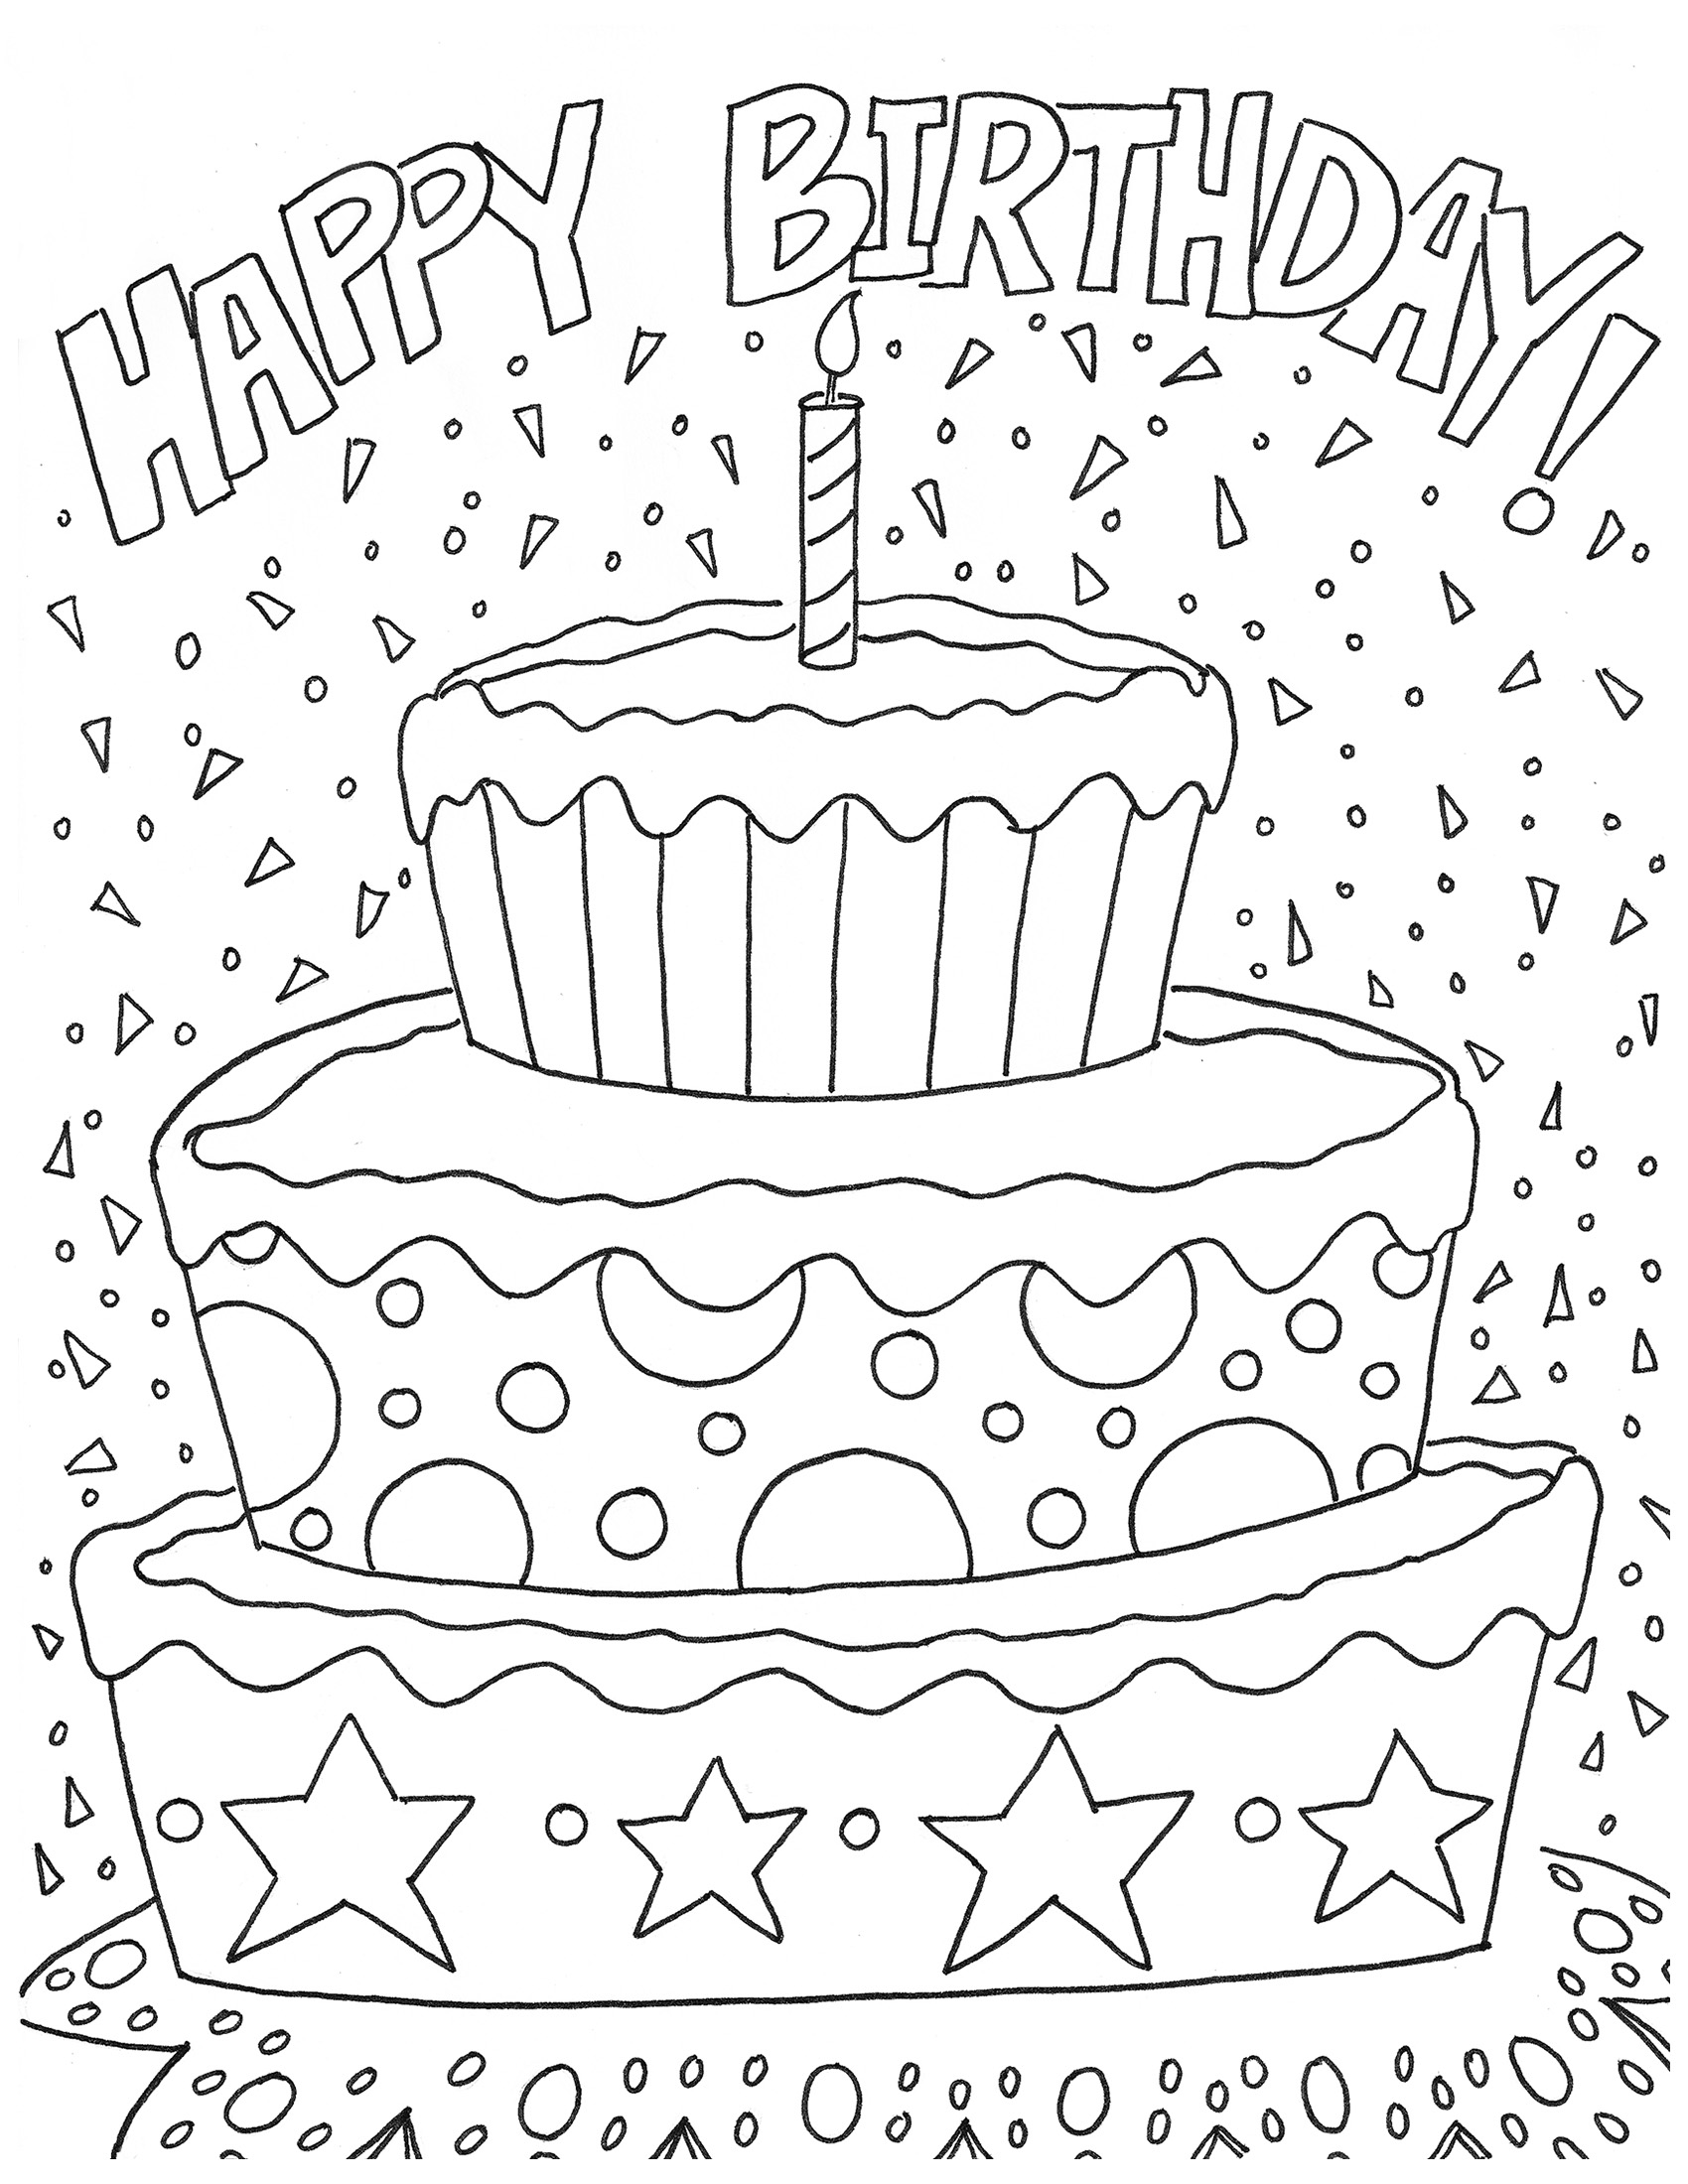 Free Happy Birthday Coloring Page